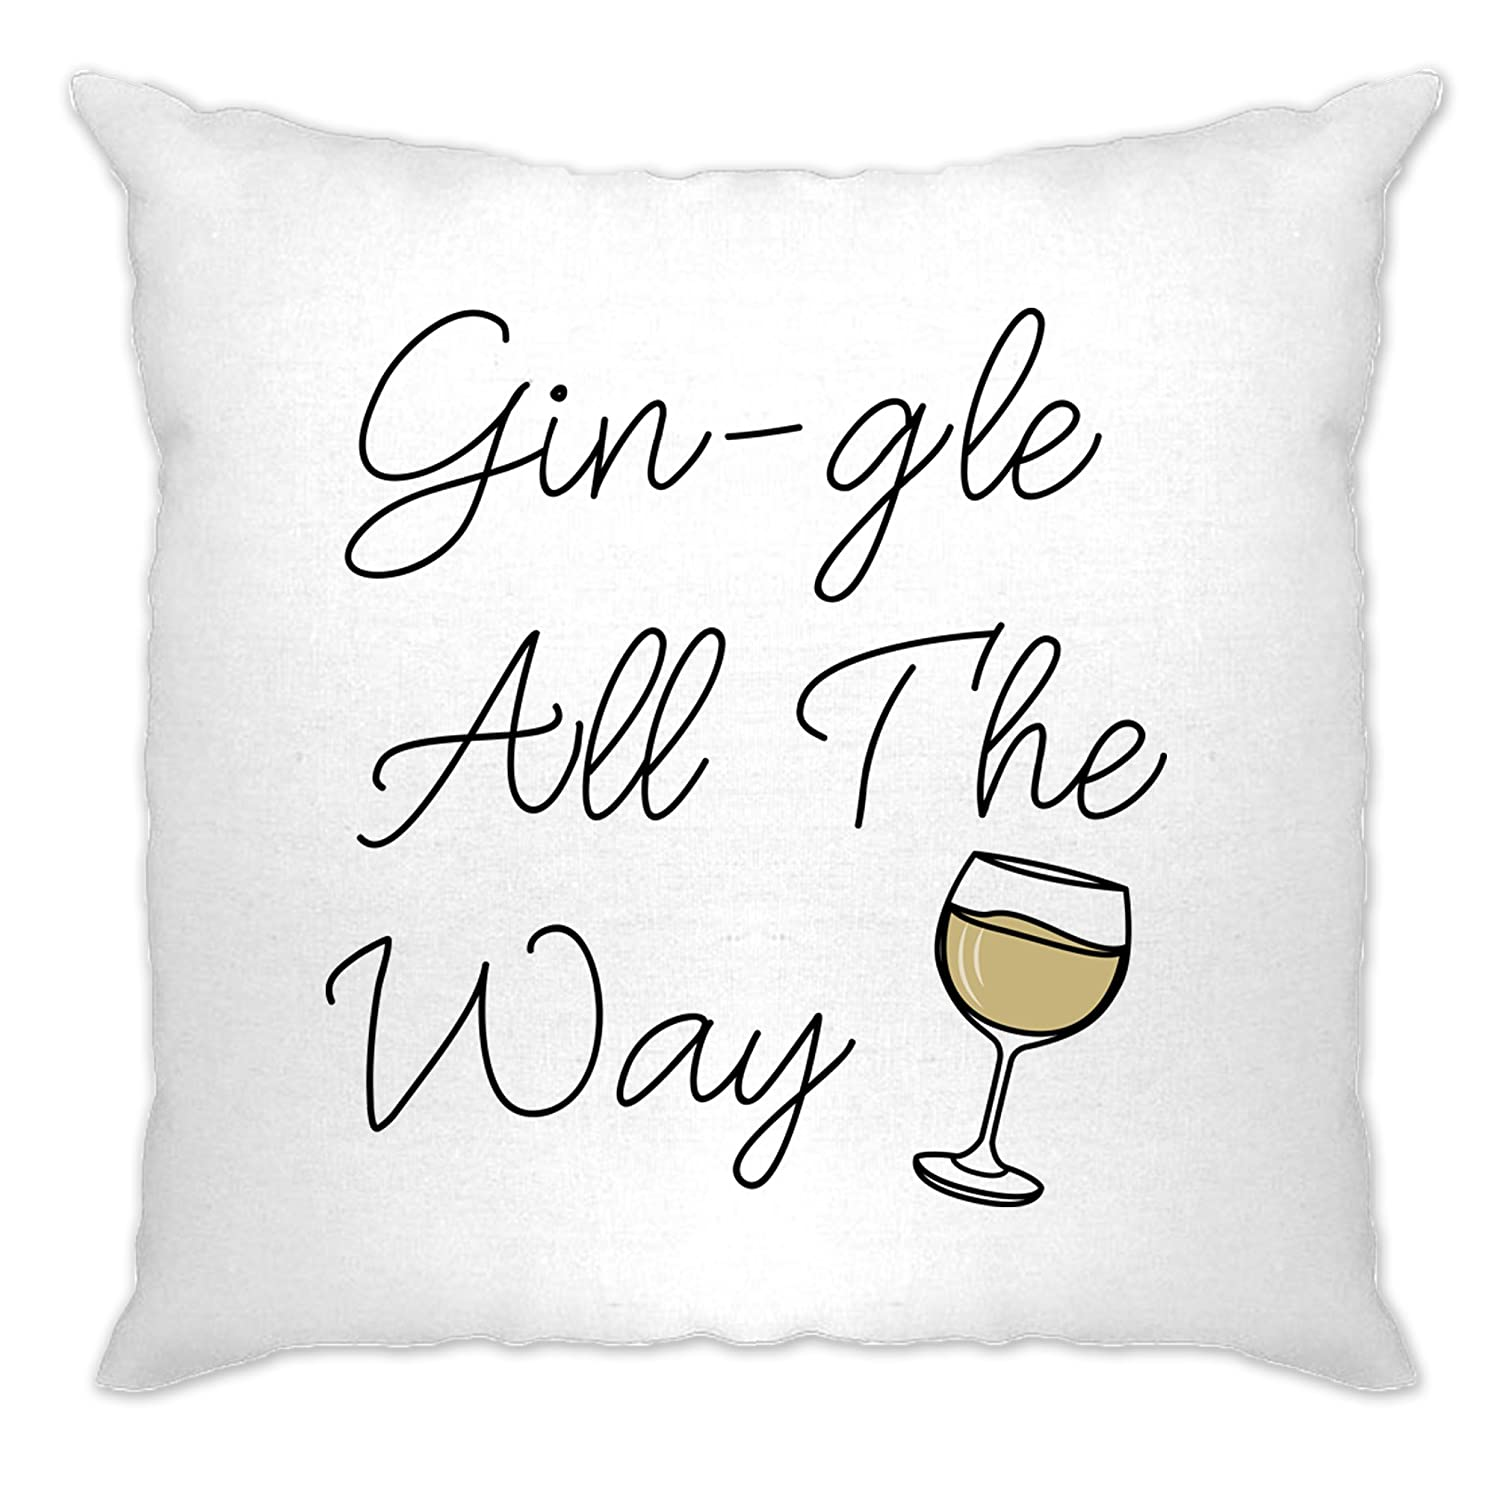 Christmas Cushion Cover Sofa Home Gin-gle All The Way Gin Drink Alcohol Santa Claus Sleigh Bells Drunk Drink Party Festive Cool Funny Gift Present Tim And Ted A-CC-02032-NAT